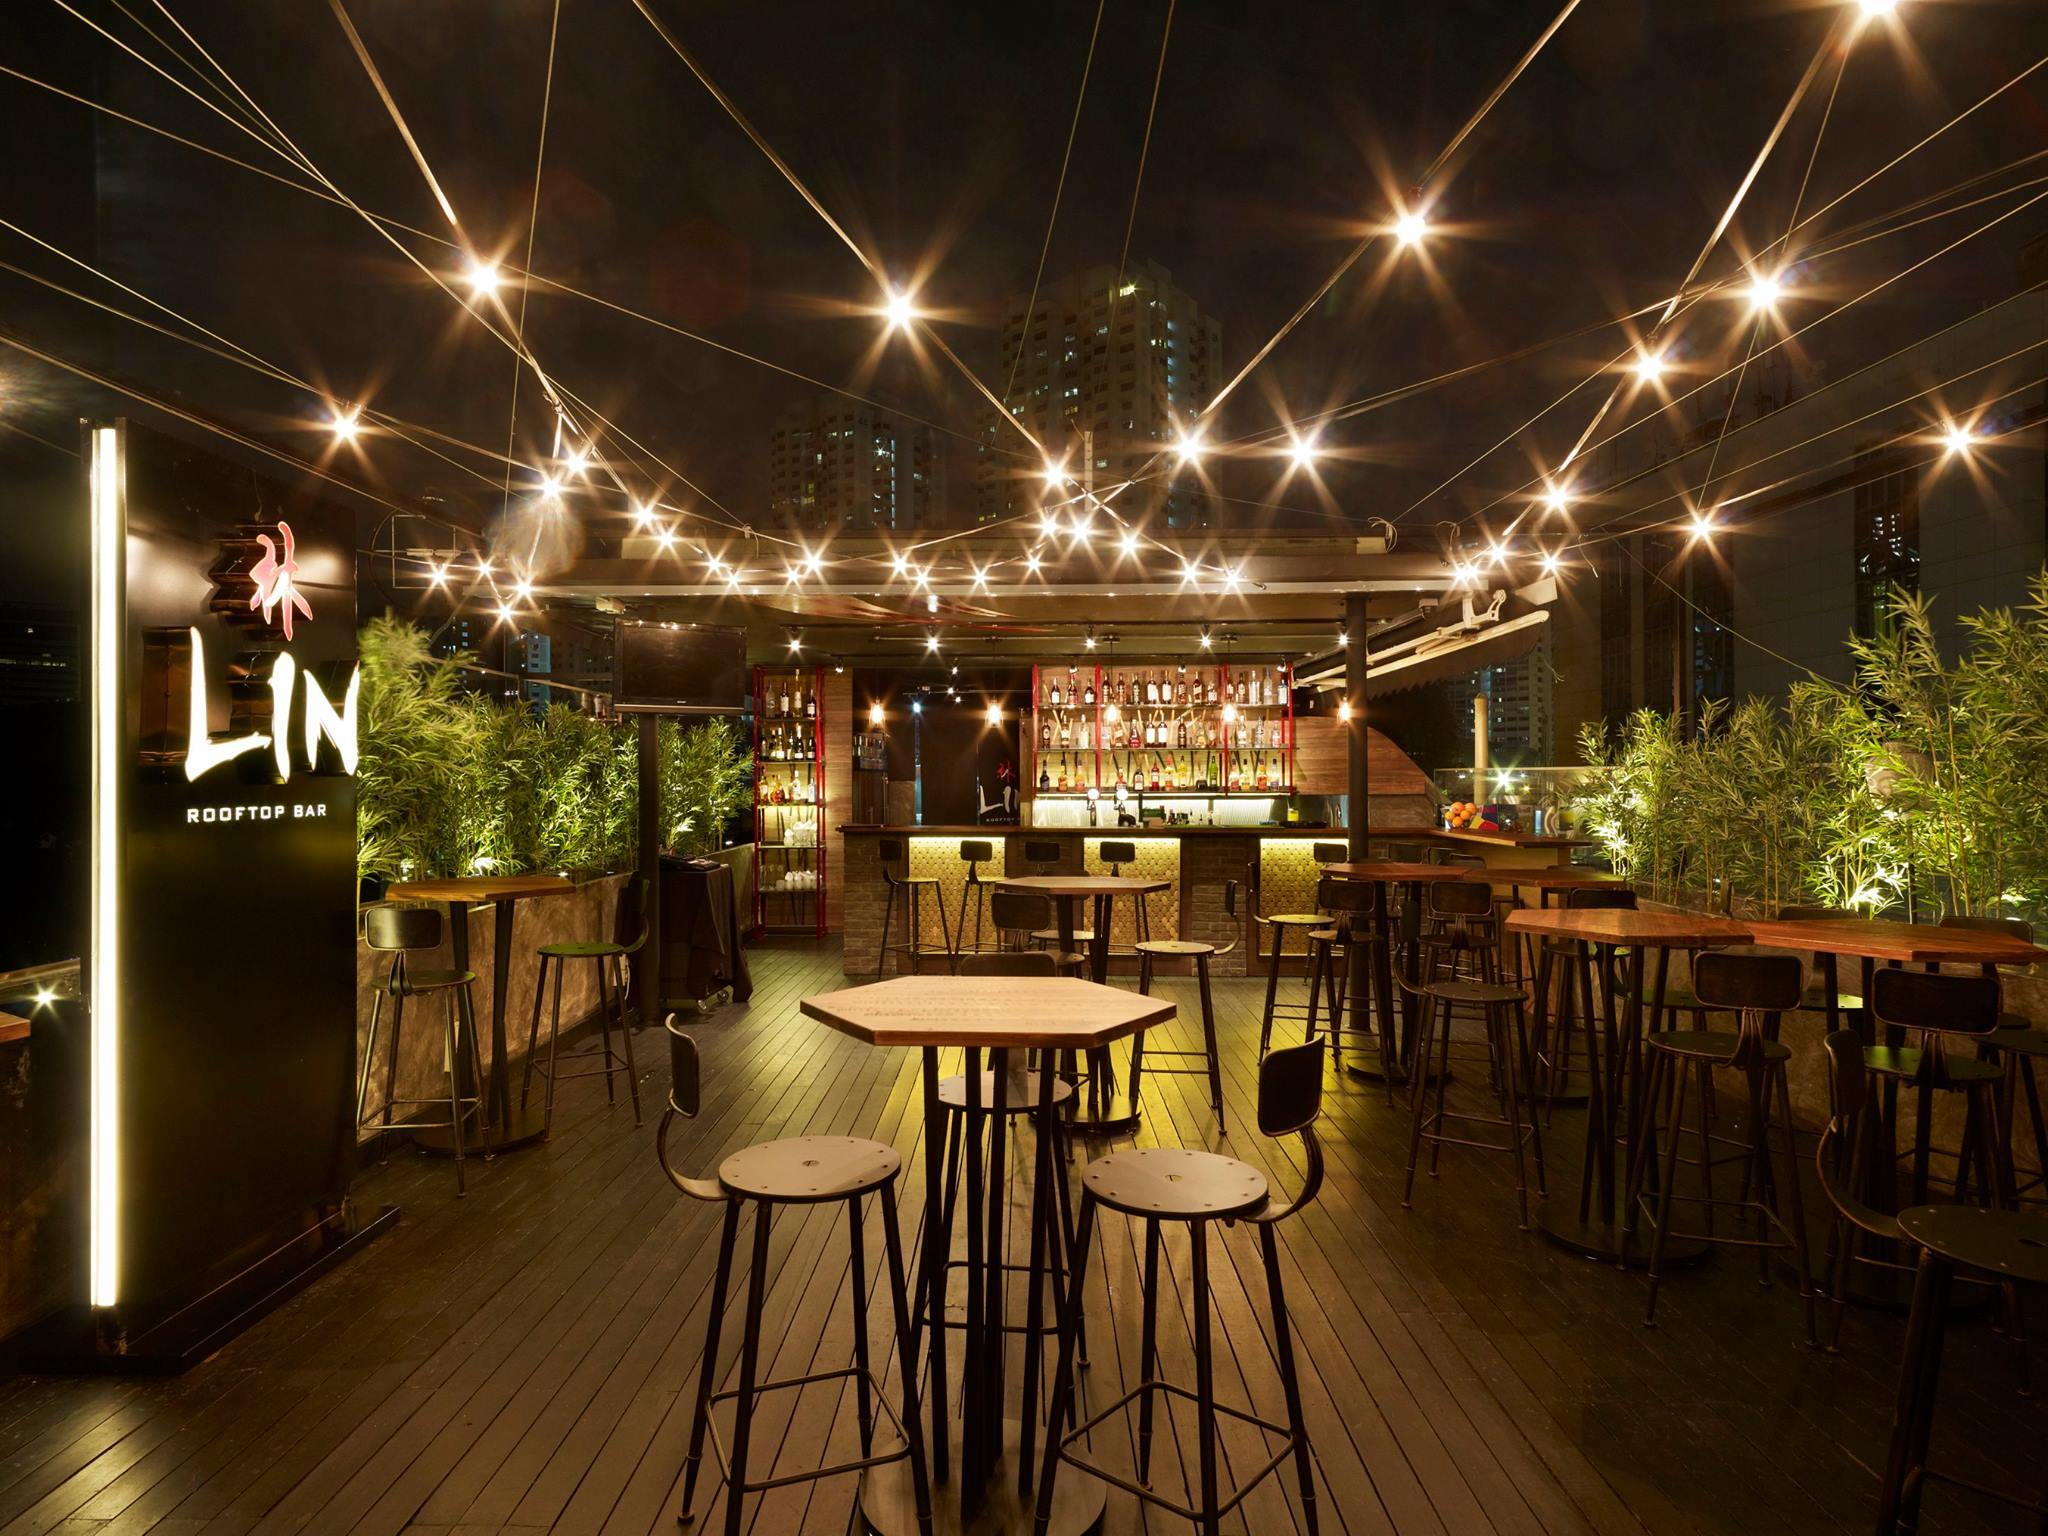 Lin Rooftop Bar Restaurants In Tiong Bahru Singapore